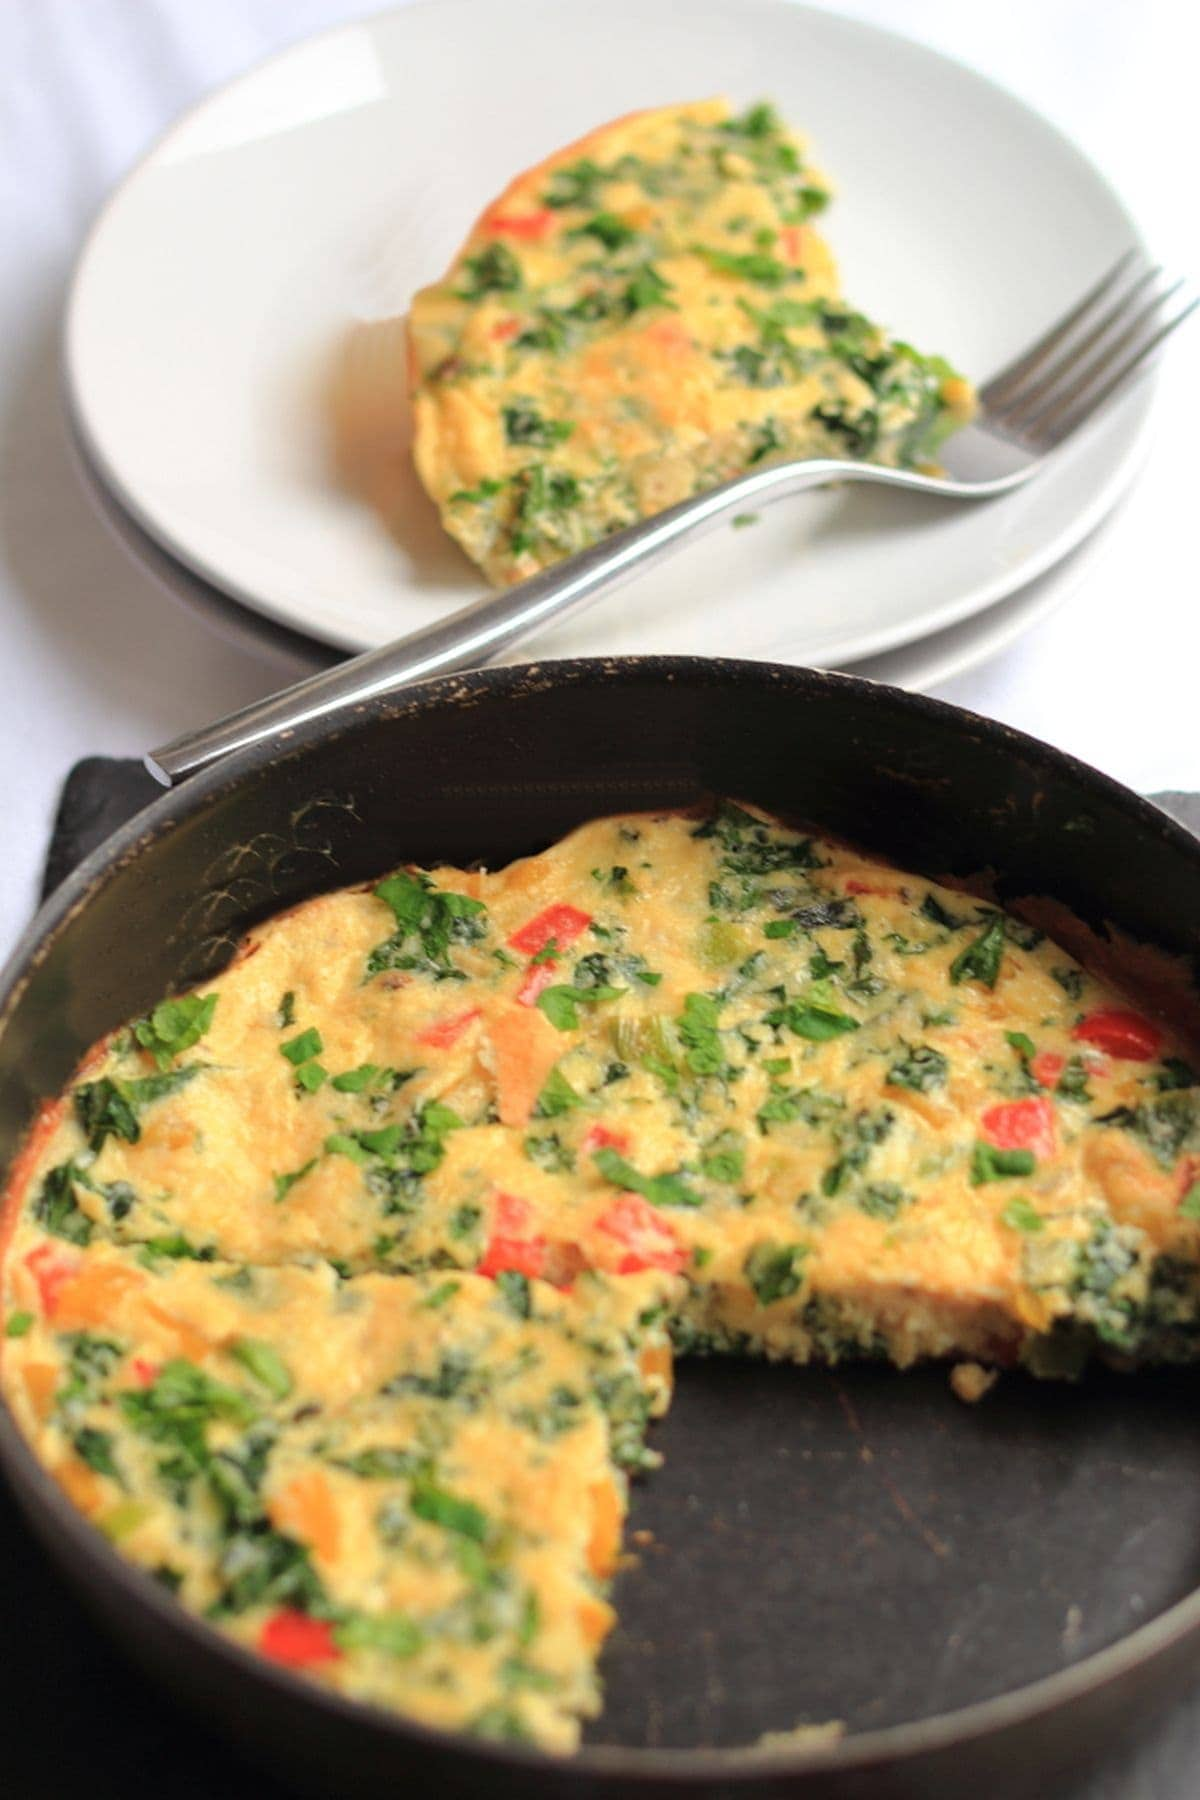 A poaching pan with the kale and pepper frittata in it. A slice taken out and placed on a small side plate with a fork in the background.